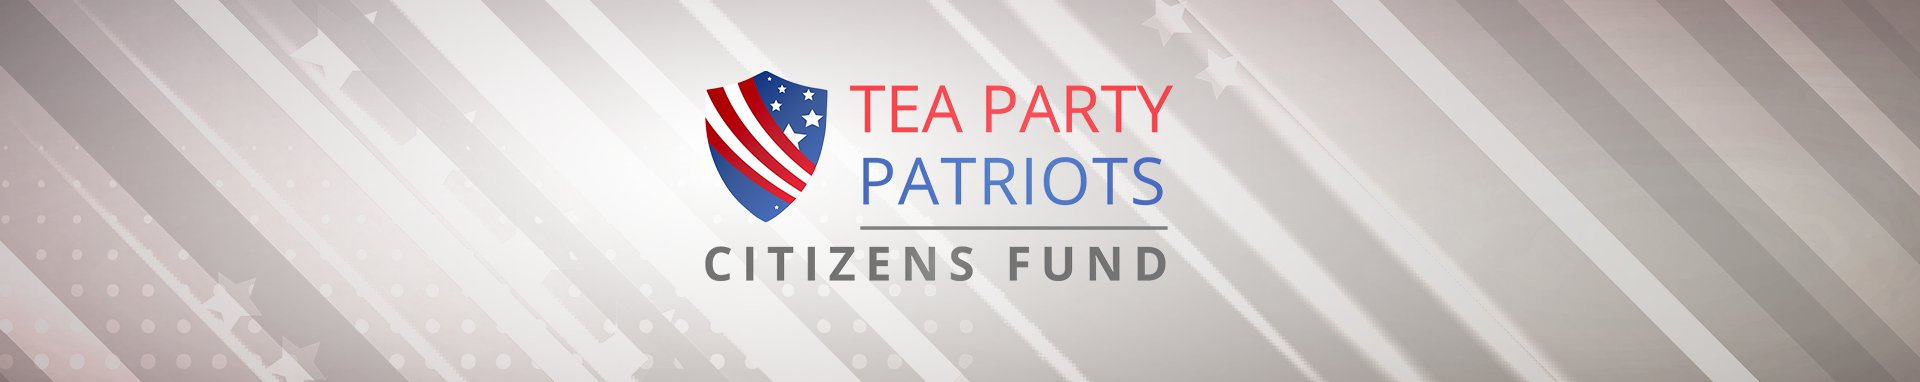 Tea Party Patriots Citizens Fund Congratulates Patrick Morrisey on his Primary Victory for U.S. Senate